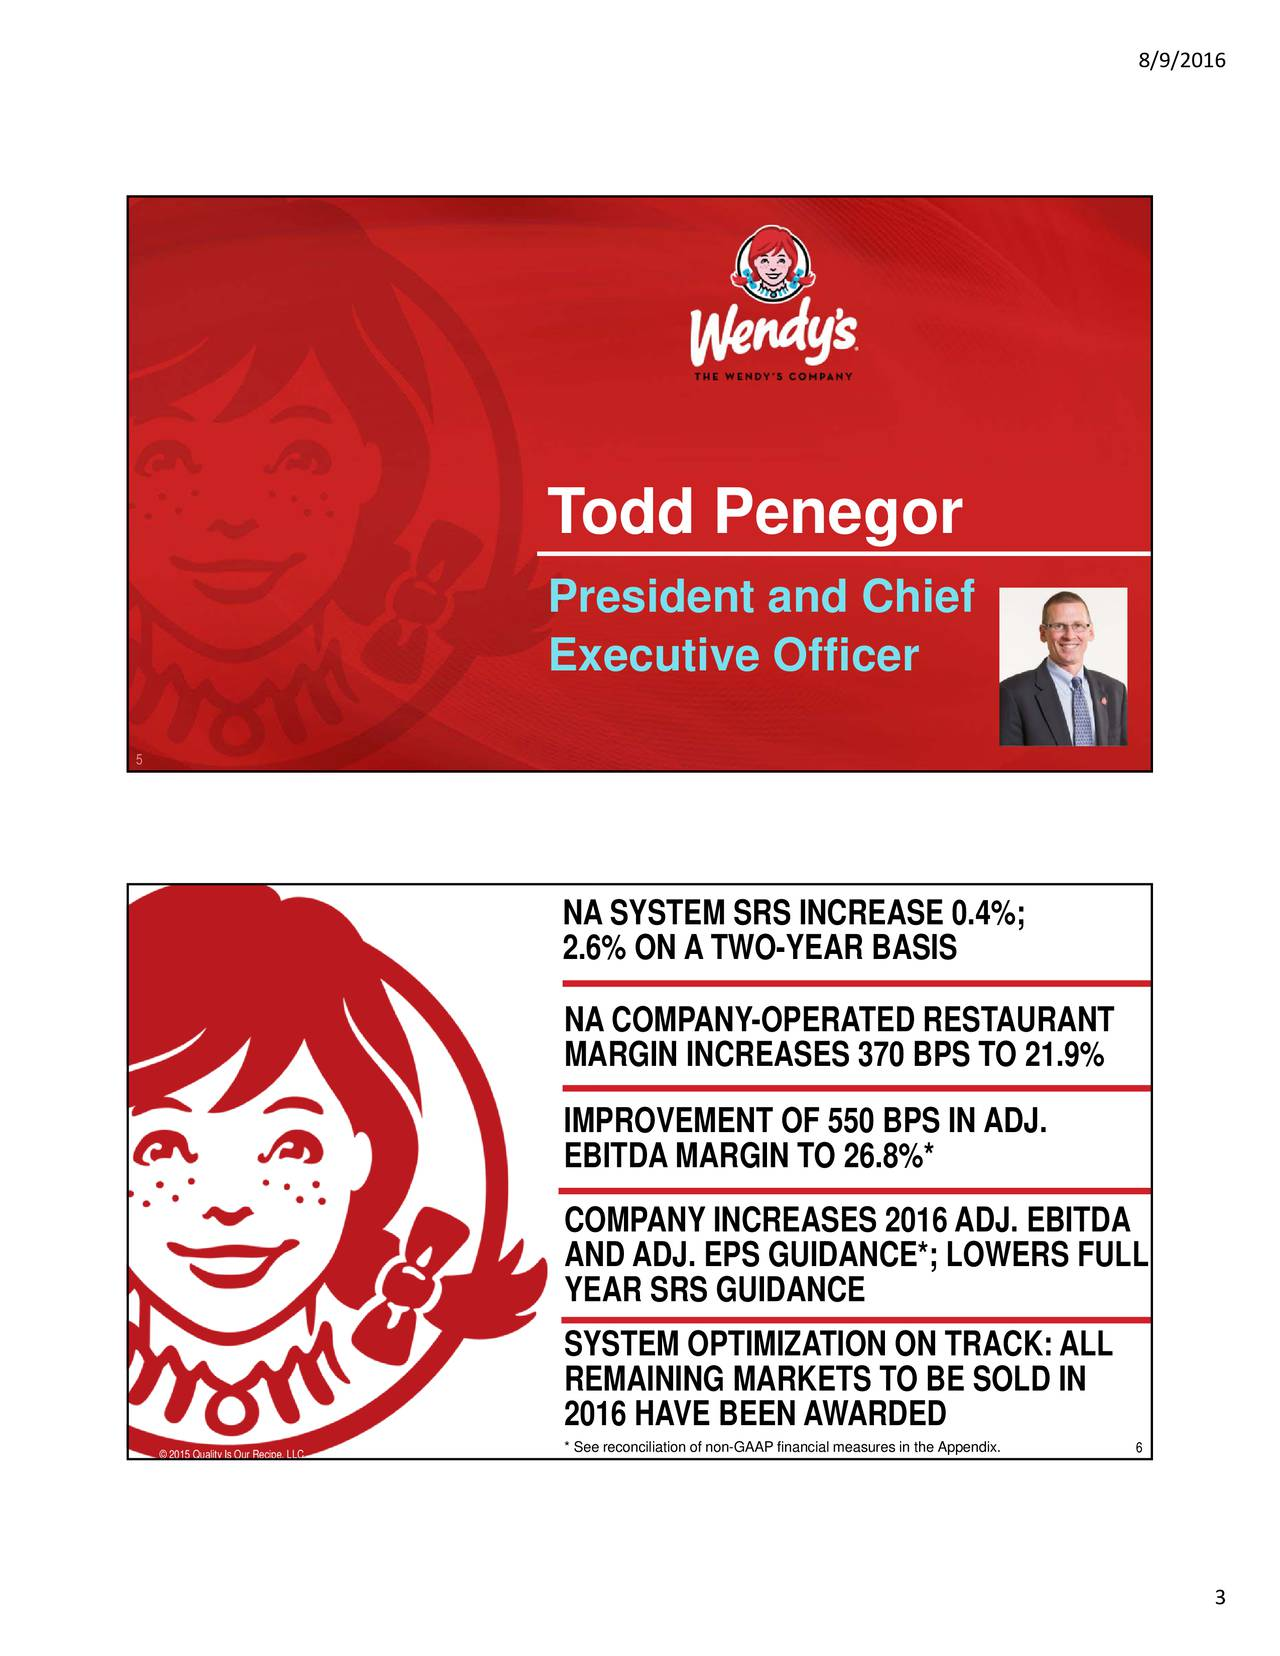 Todd Penegor President and Chief Executive Officer 5 NA SYSTEM SRS INCREASE 0.4%; 2.6% ON A TWO-YEAR BASIS NA COMPANY-OPERATED RESTAURANT MARGIN INCREASES 370 BPS TO 21.9% IMPROVEMENT OF 550 BPS IN ADJ. EBITDA MARGIN TO 26.8%* COMPANY INCREASES 2016ADJ. EBITDA ANDADJ. EPS GUIDANCE*; LOWERS FULL YEAR SRS GUIDANCE SYSTEM OPTIMIZATION ON TRACK:ALL REMAINING MARKETS TO BE SOLD IN 2016 HAVE BEEN AWARDED * See reconciliation of non-GAAP finan6ial measures in the Appendix. 2015 Quality Is Our Recipe, LLC 3